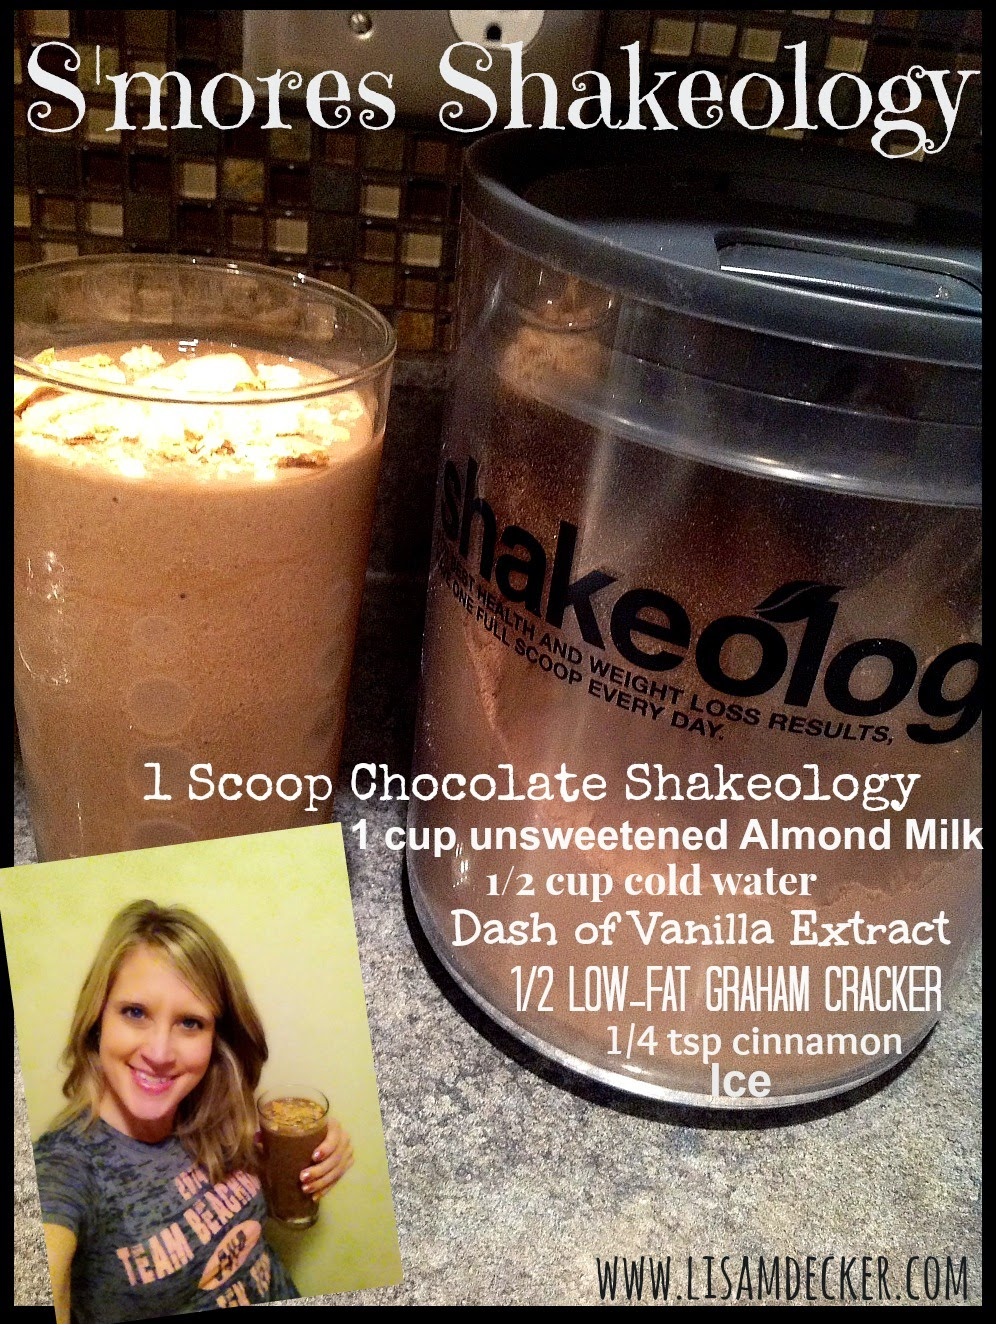 S'mores Shakeology, Shakeology, Chocolate Shakeology